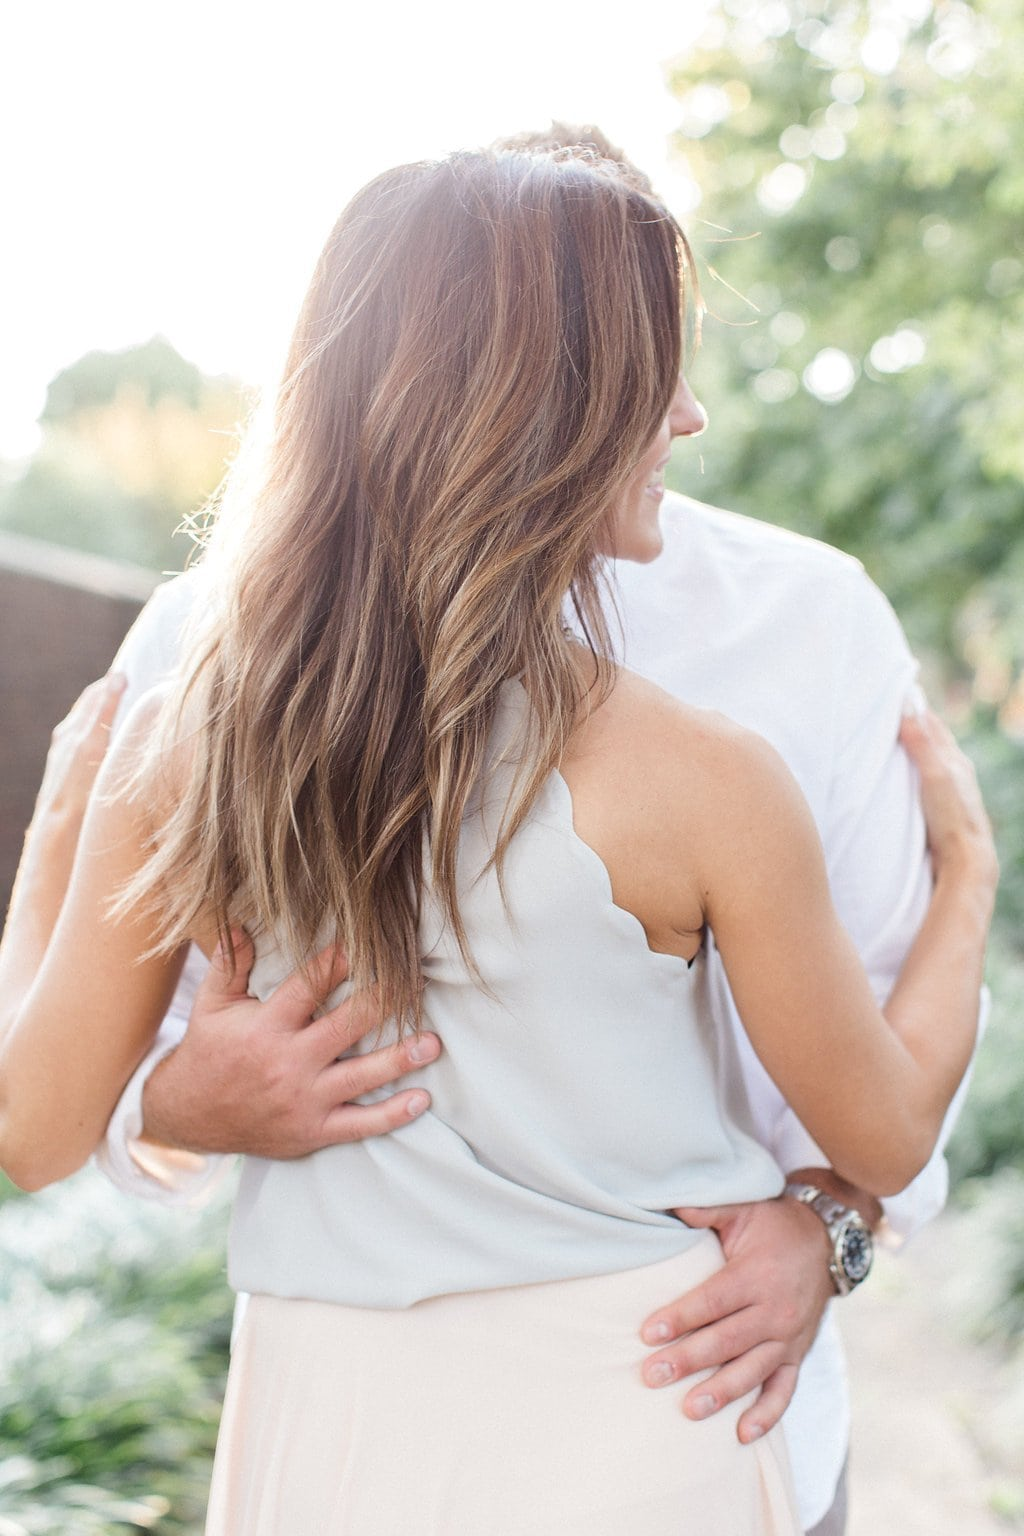 Side view of woman's hair cascading down her back while man embraces her